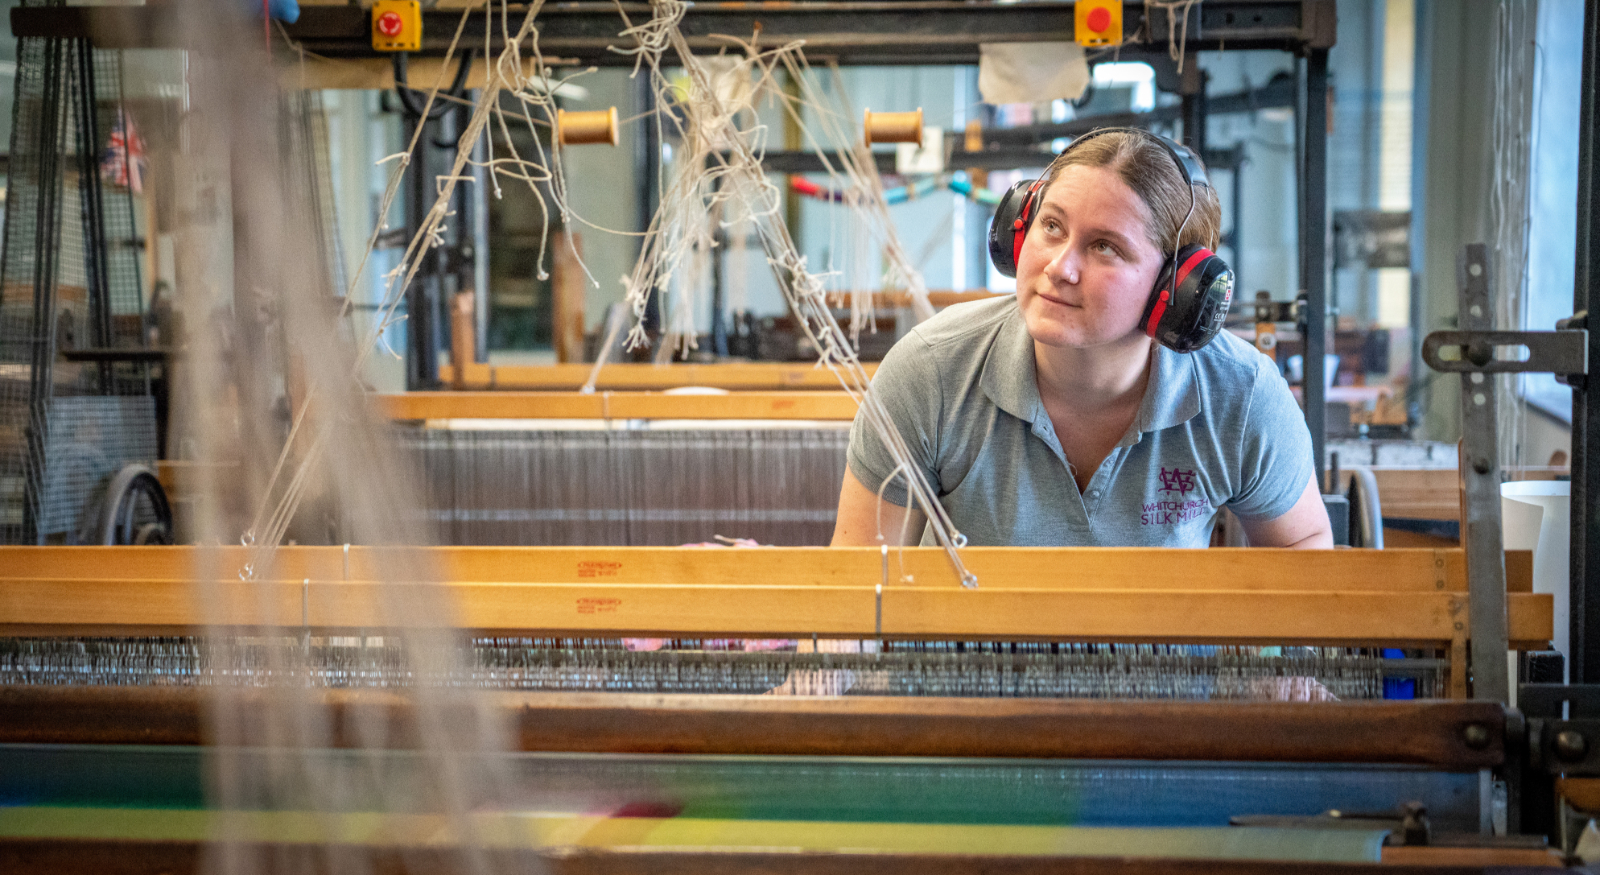 Mill to receive £50,000 from the second round of the Government's Culture Recovery Fund